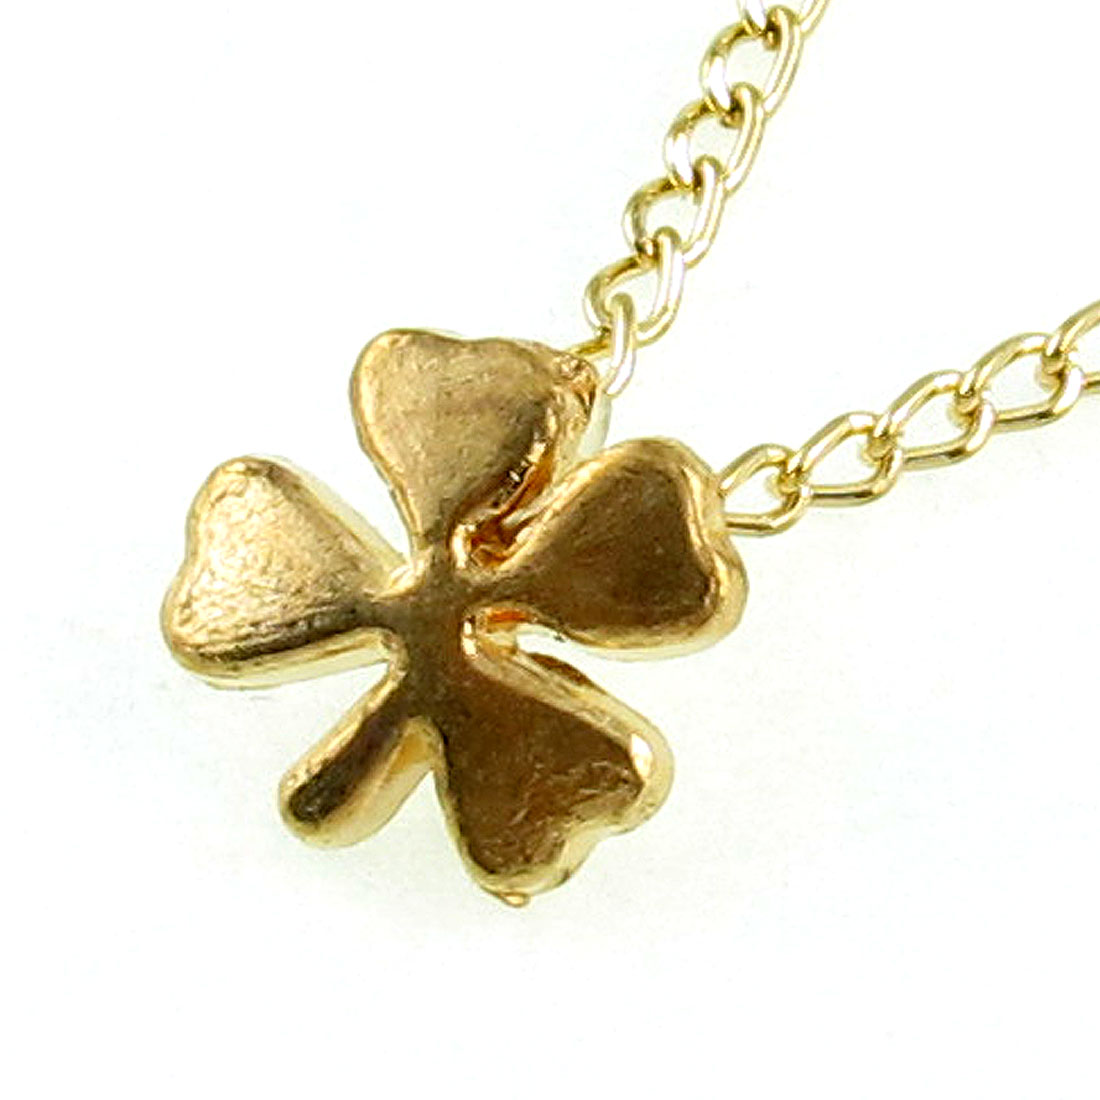 Lady Gold Tone Chain Clover Shaped Pendant Necklace